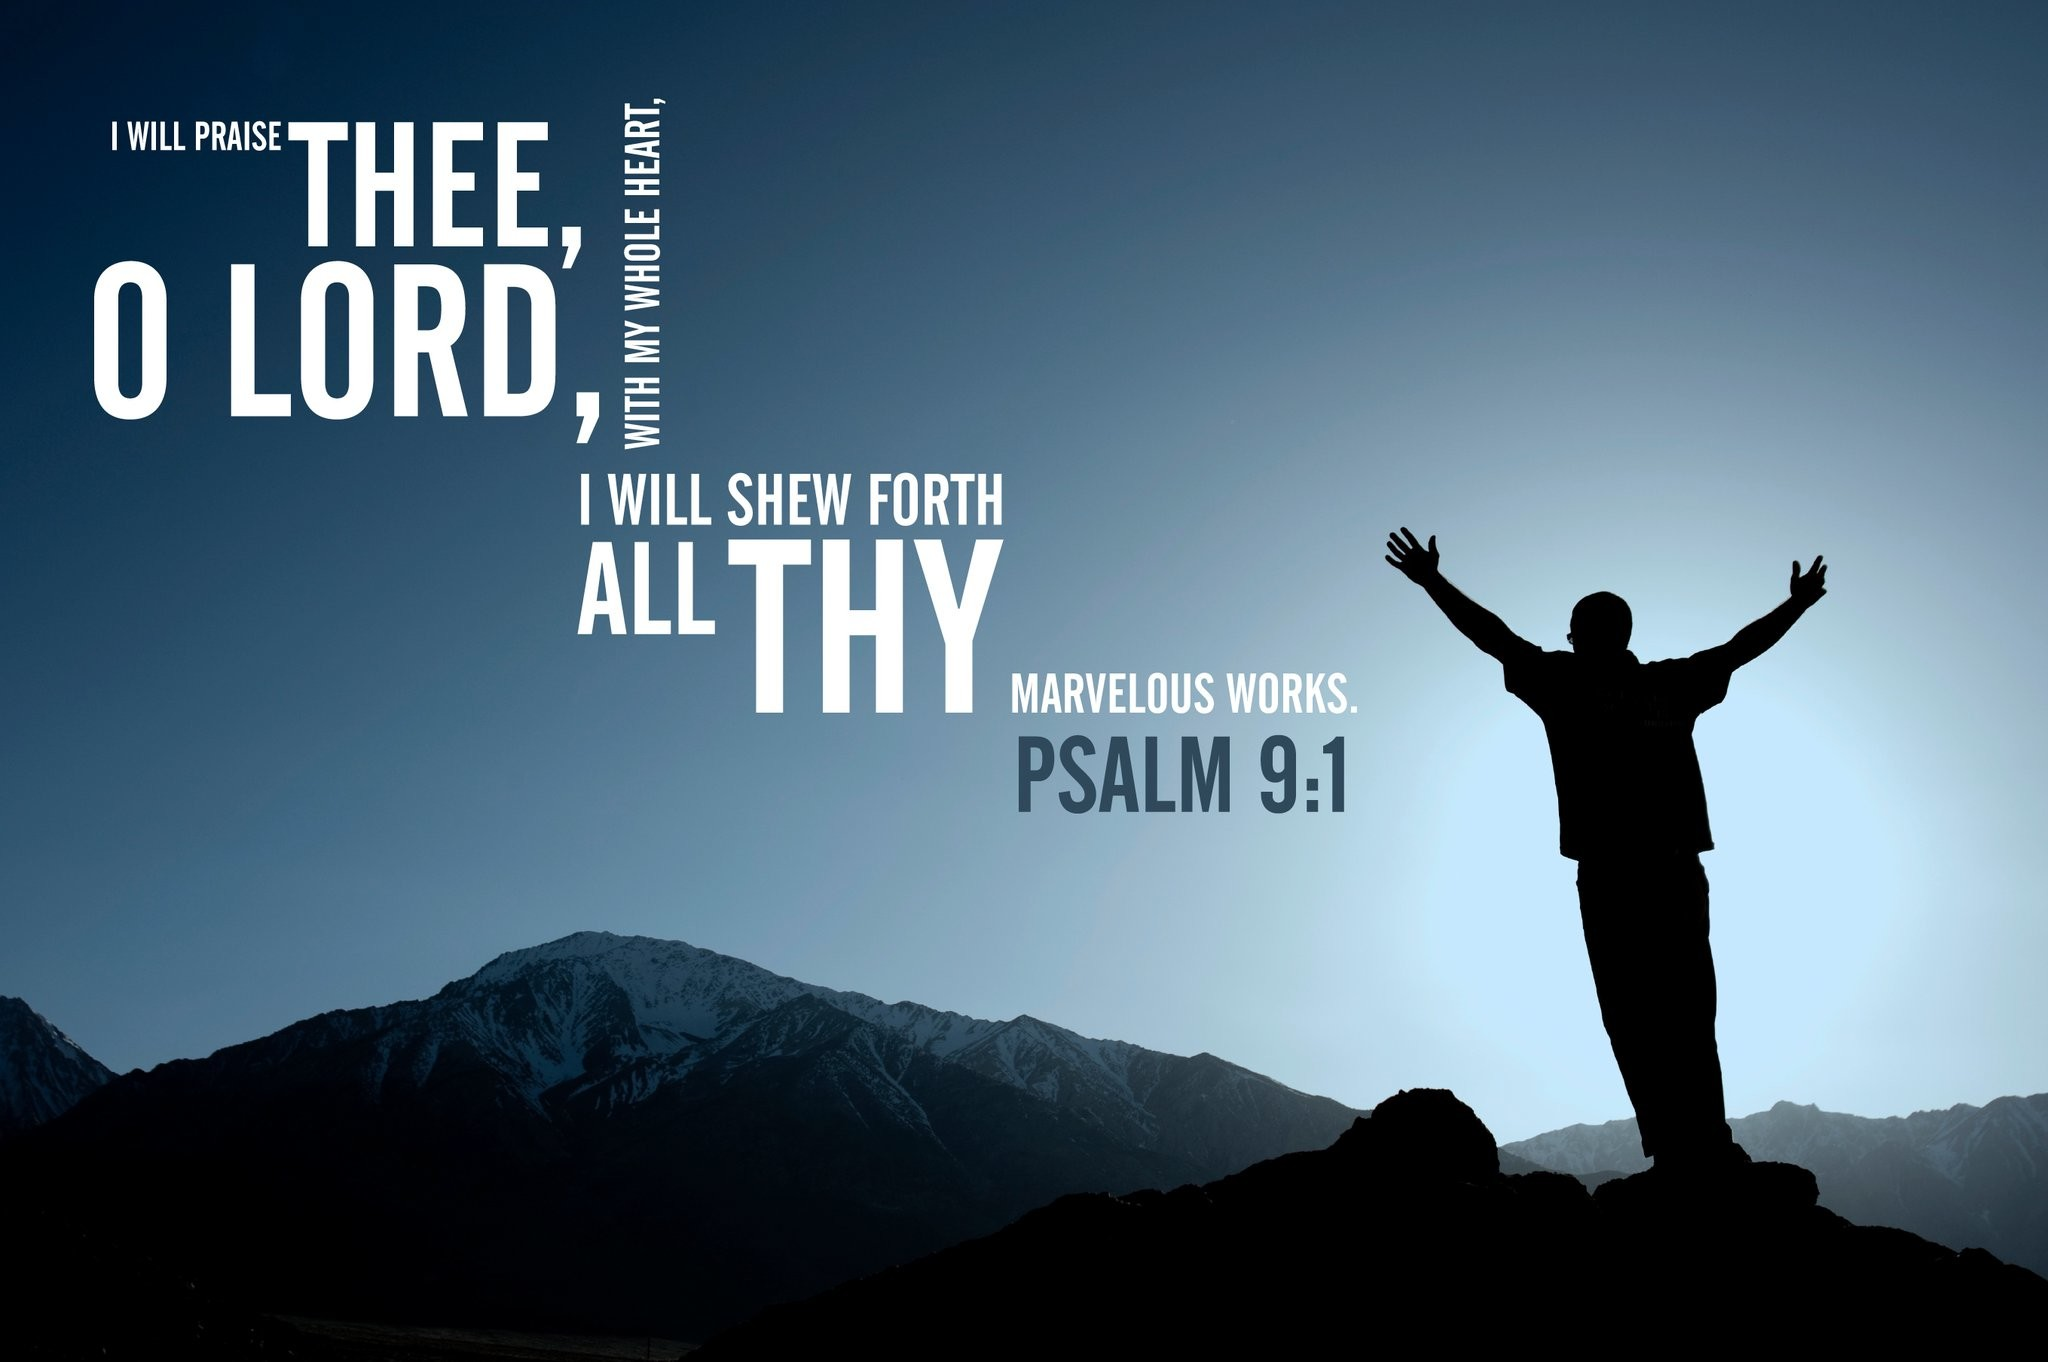 Thy marvelous works Wallpaper – Christian Wallpapers and Backgrounds .